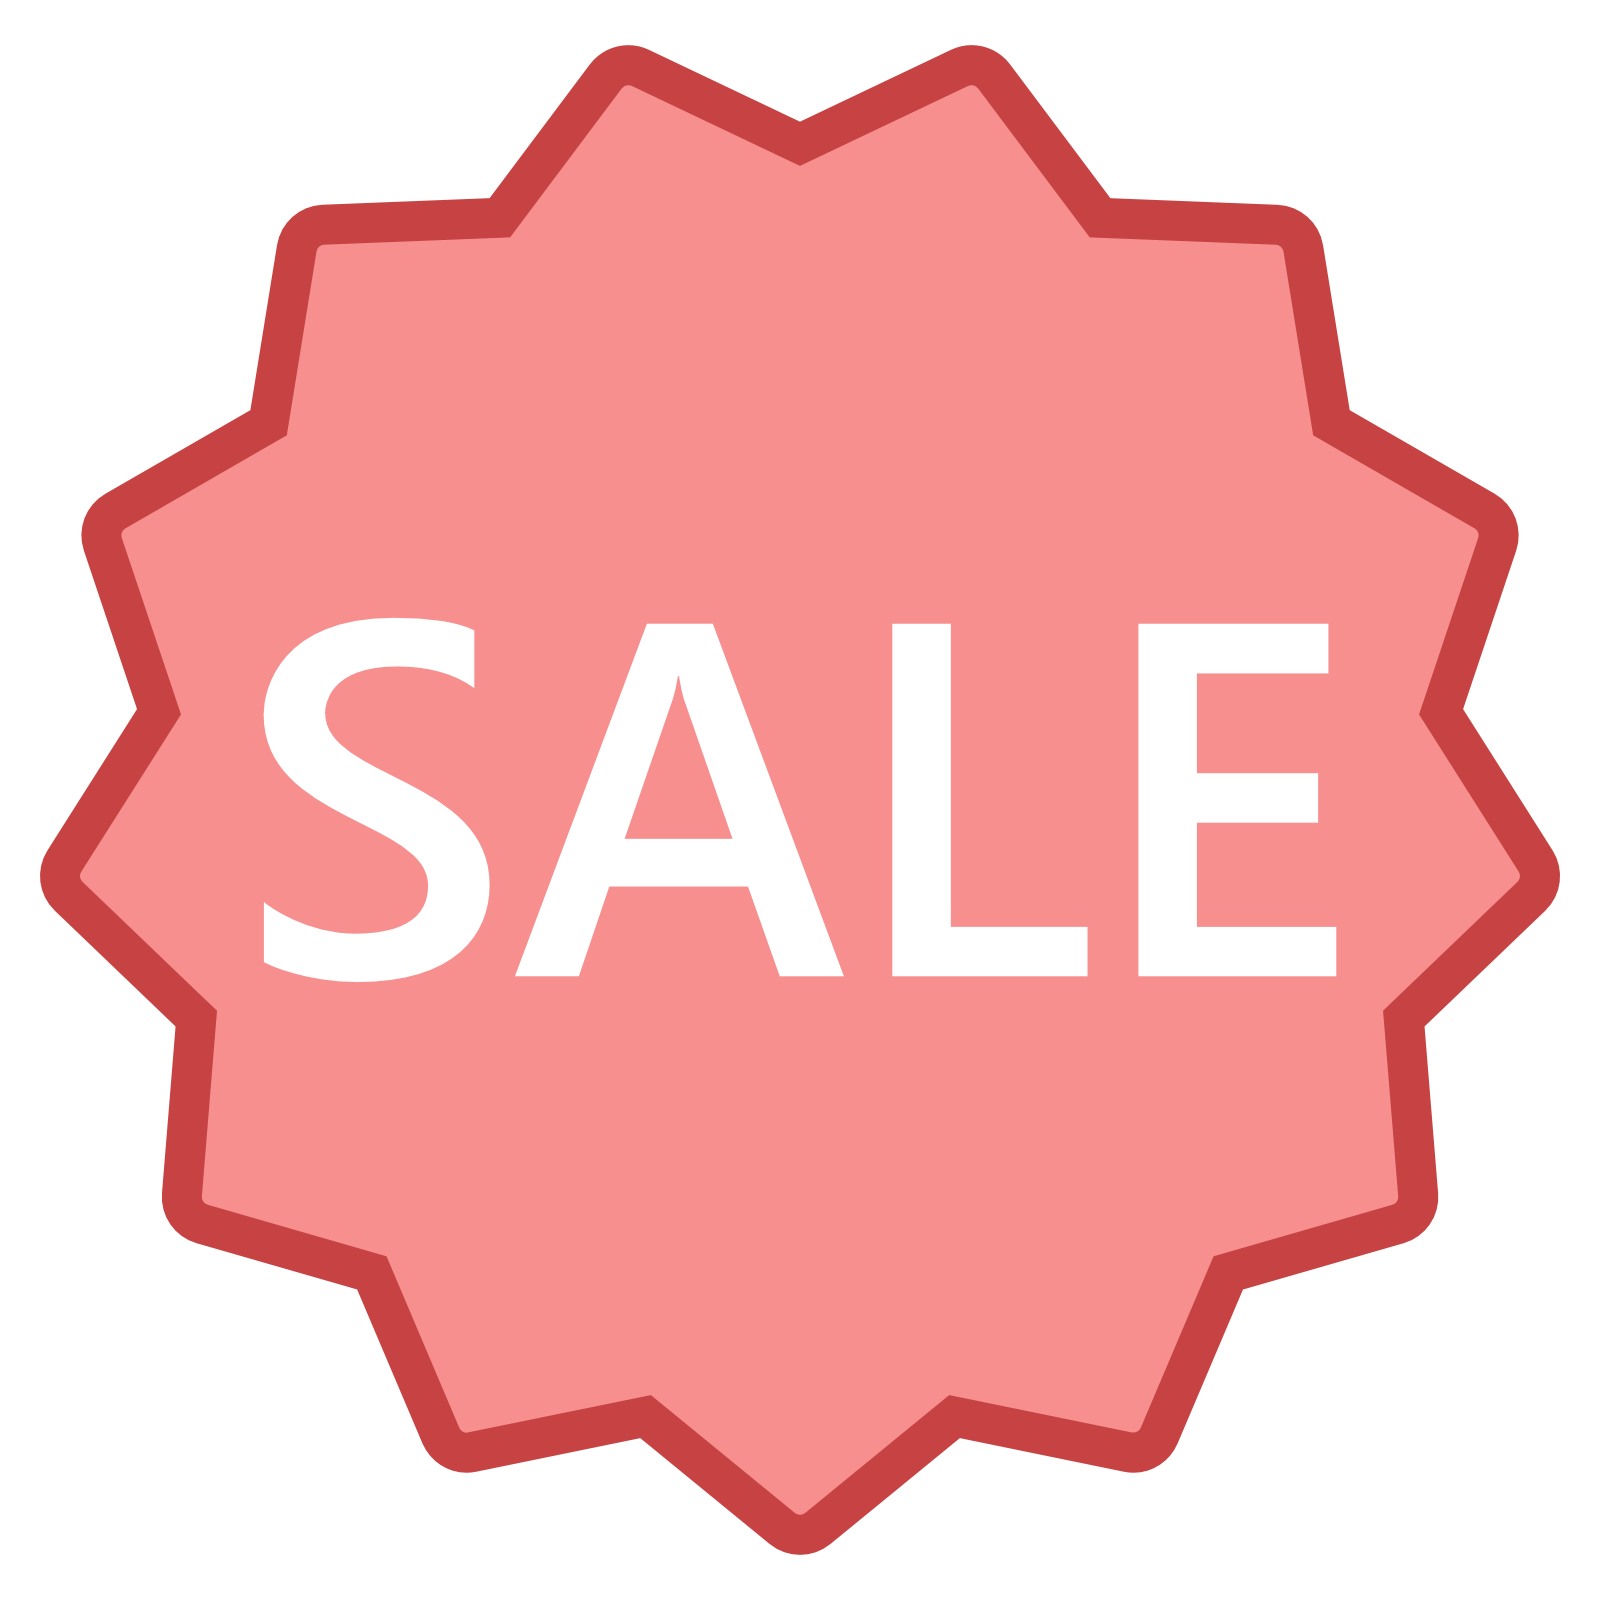 Sale star png. Transparent images cool gallery